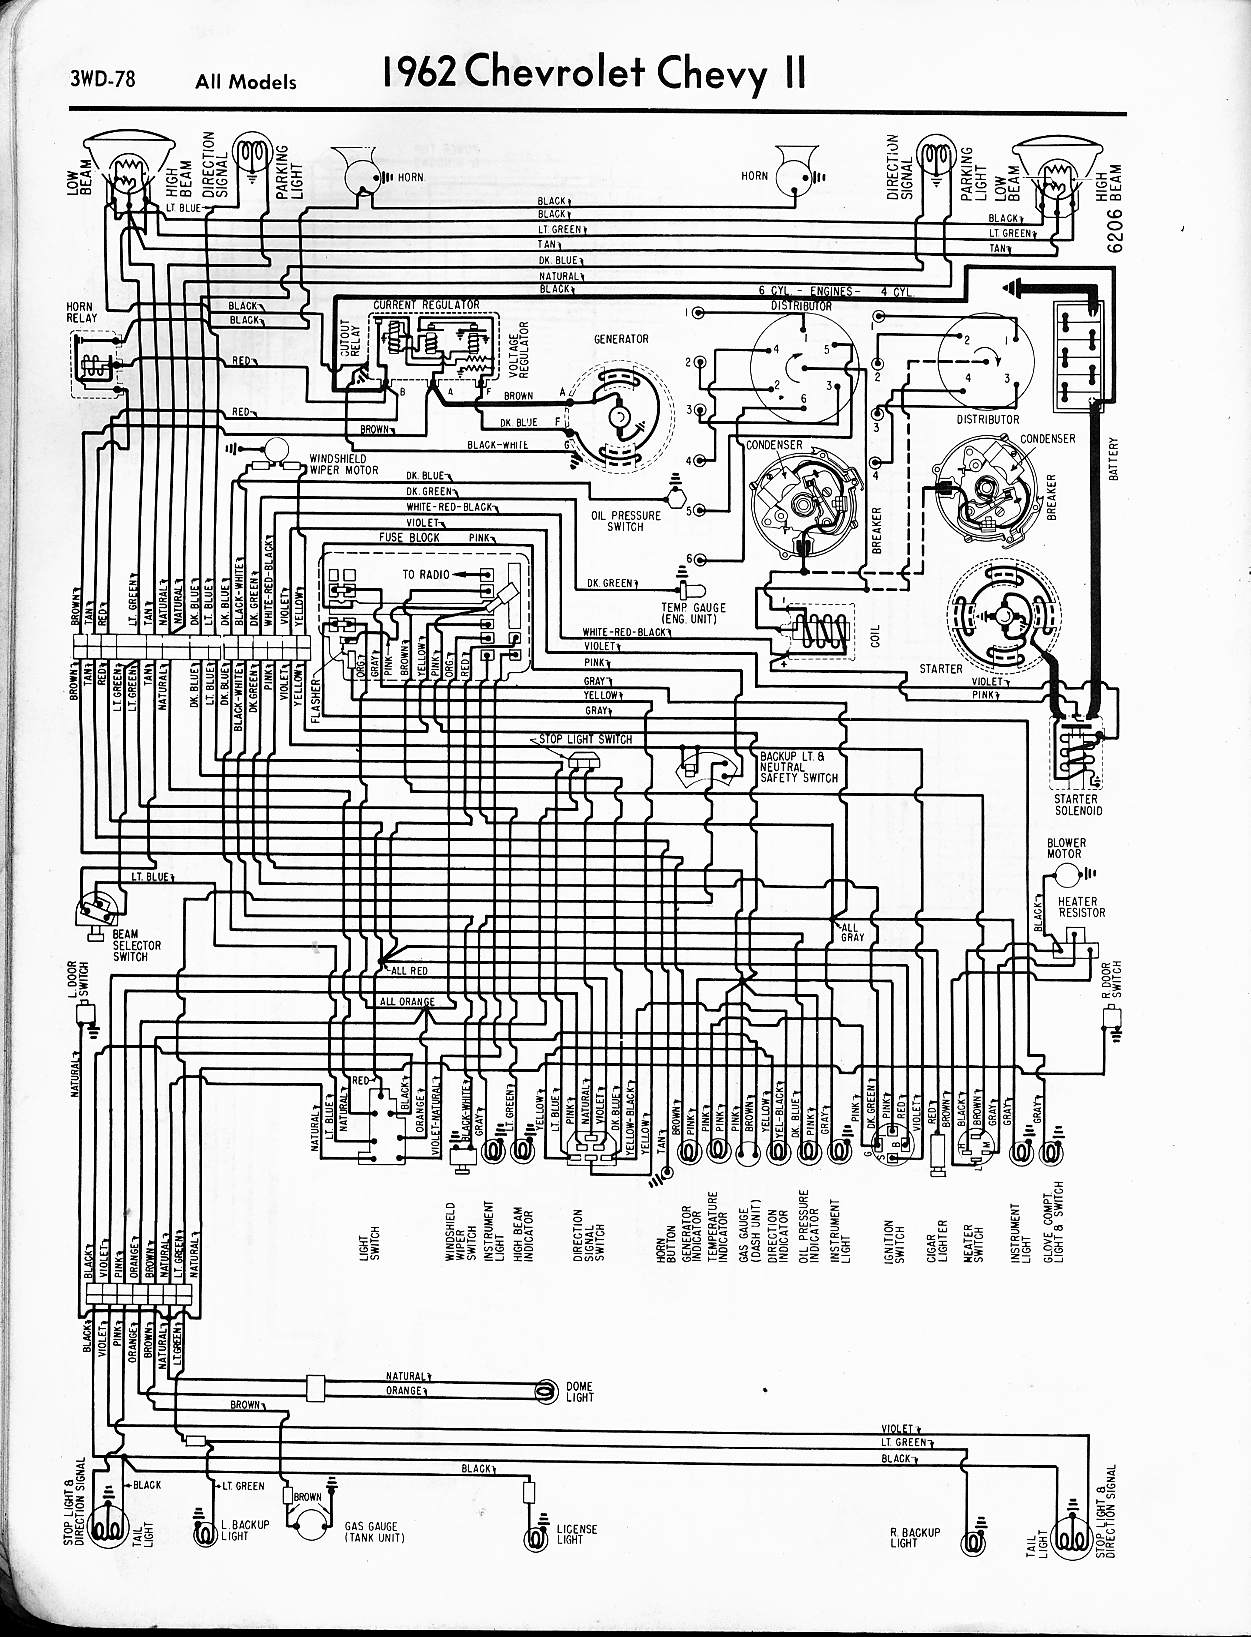 1963 Impala Wiring Diagram Electrical Diagrams Of 1965 Chevrolet Corvette Part 1 Todays 1966 Chevelle